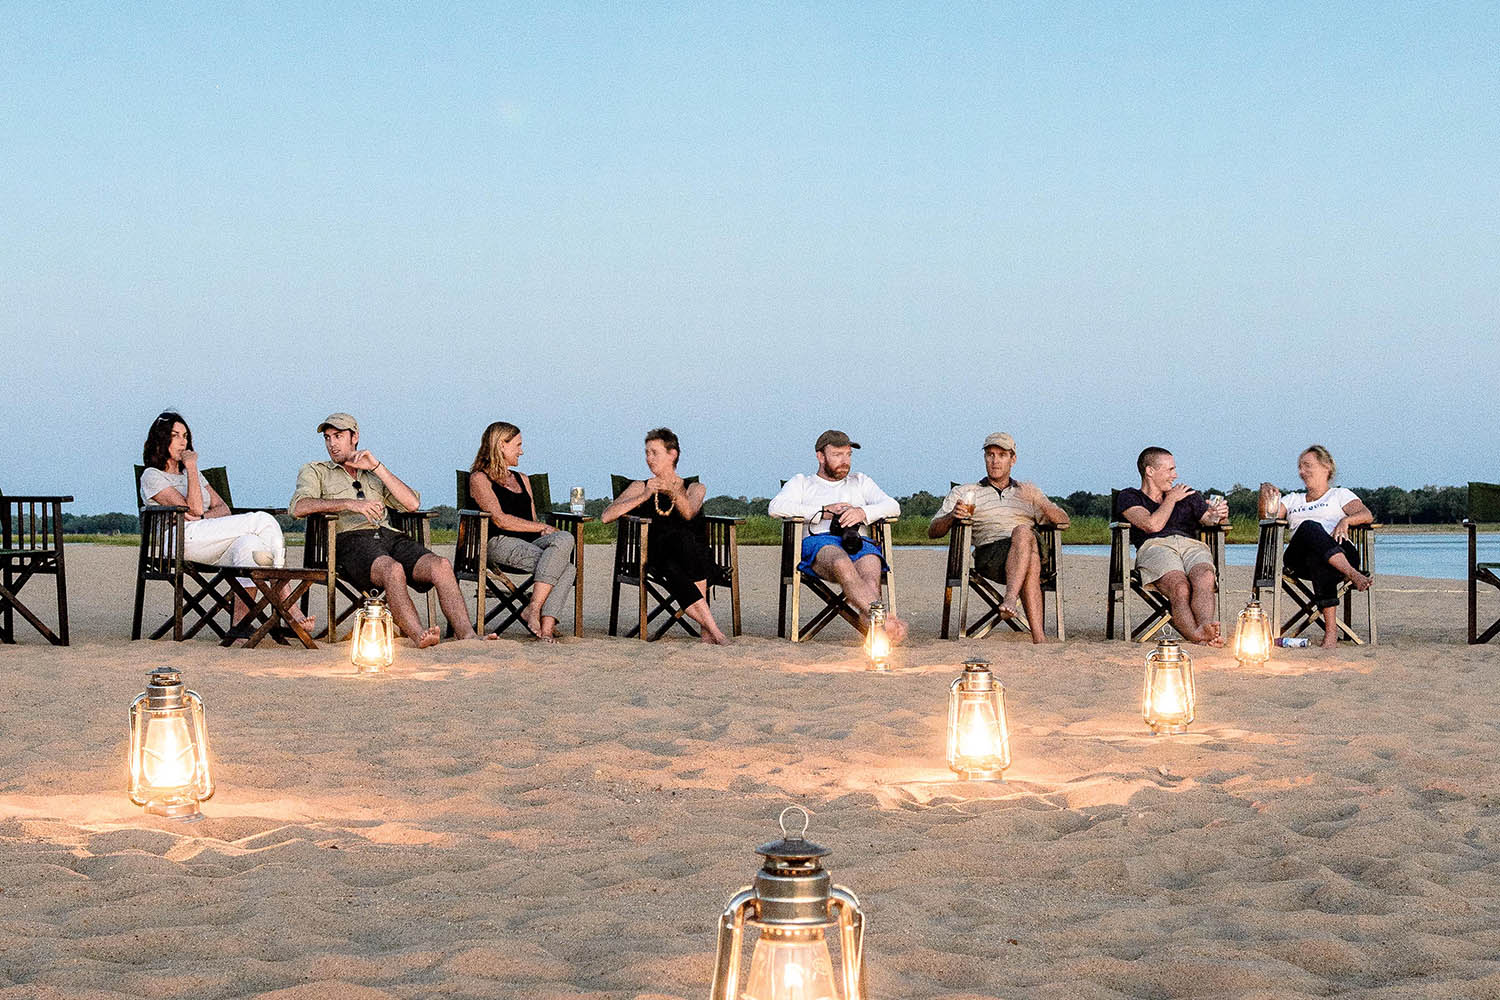 baines river camp zambia-in-style-safari-packages-lodges-lower-zambezi-african-safari-experience-relaxing